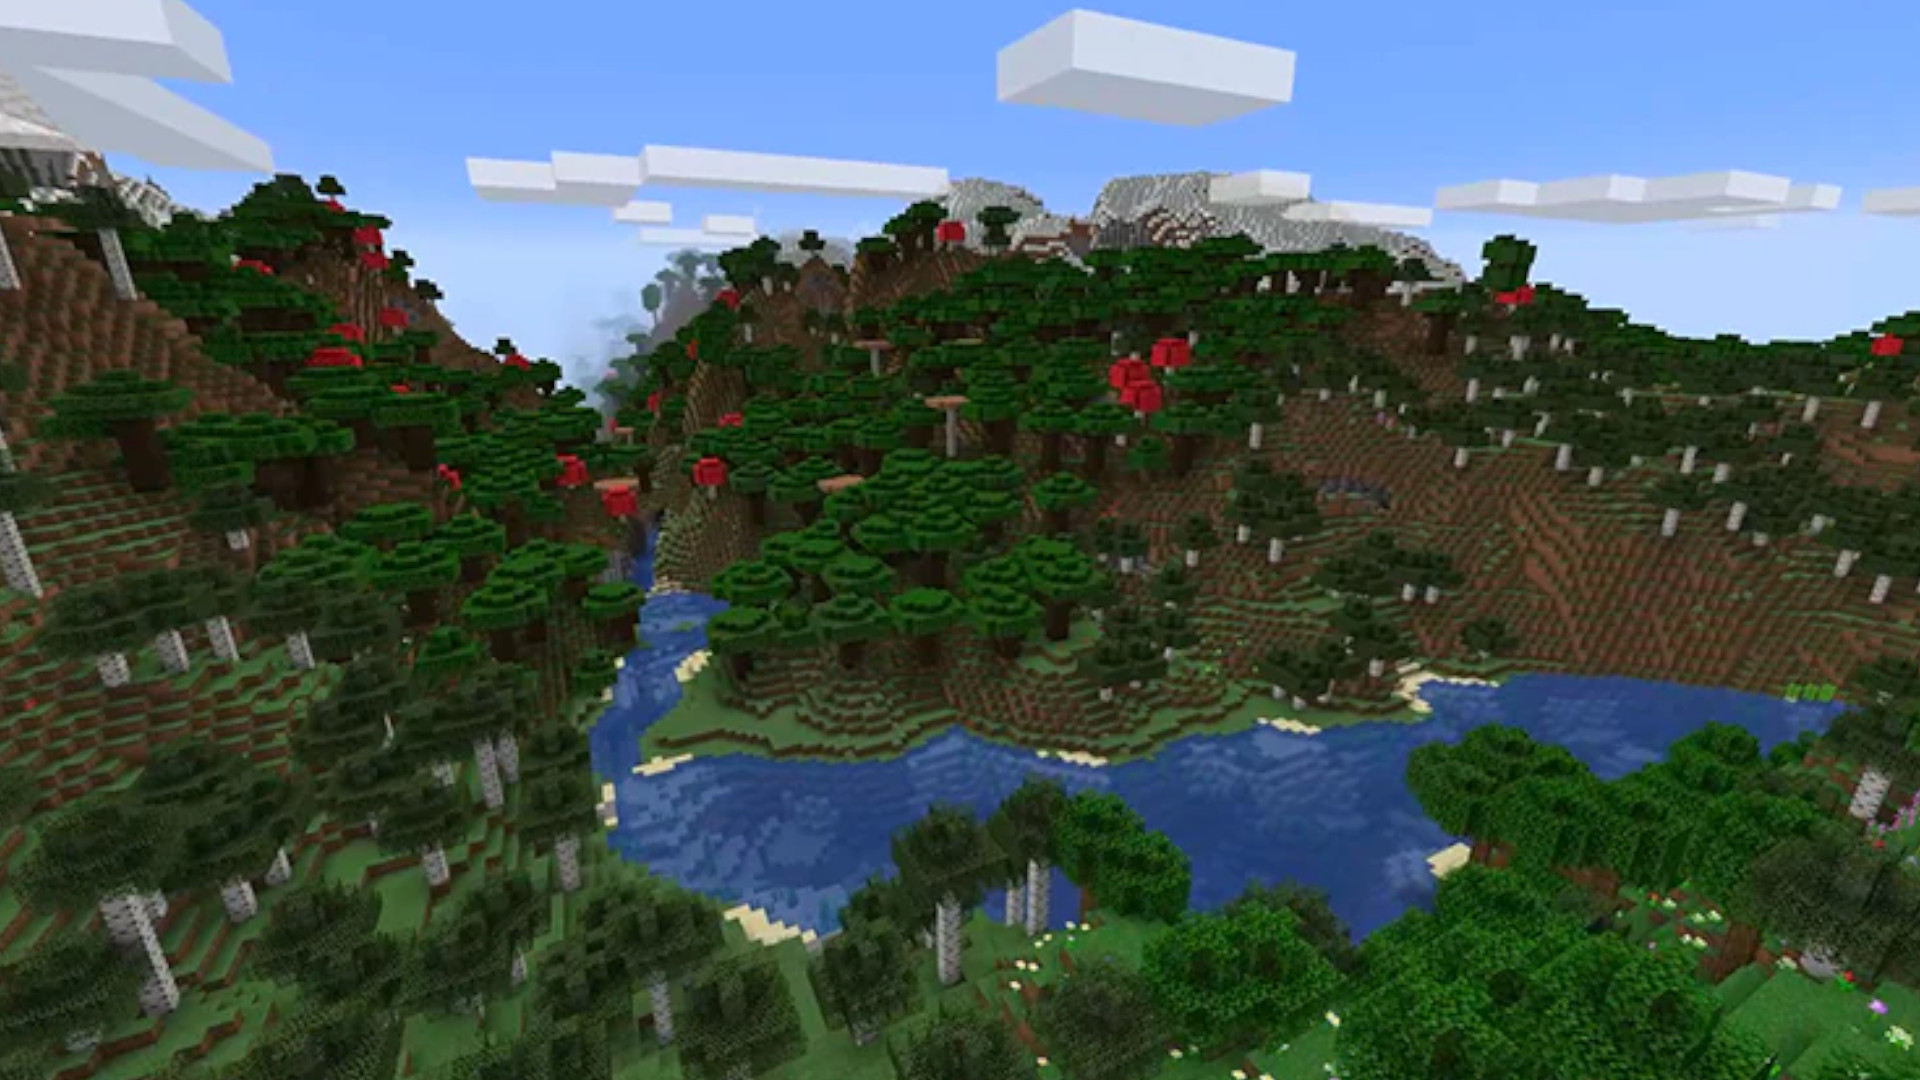 Minecraft adds another new mountain biome for 1.18